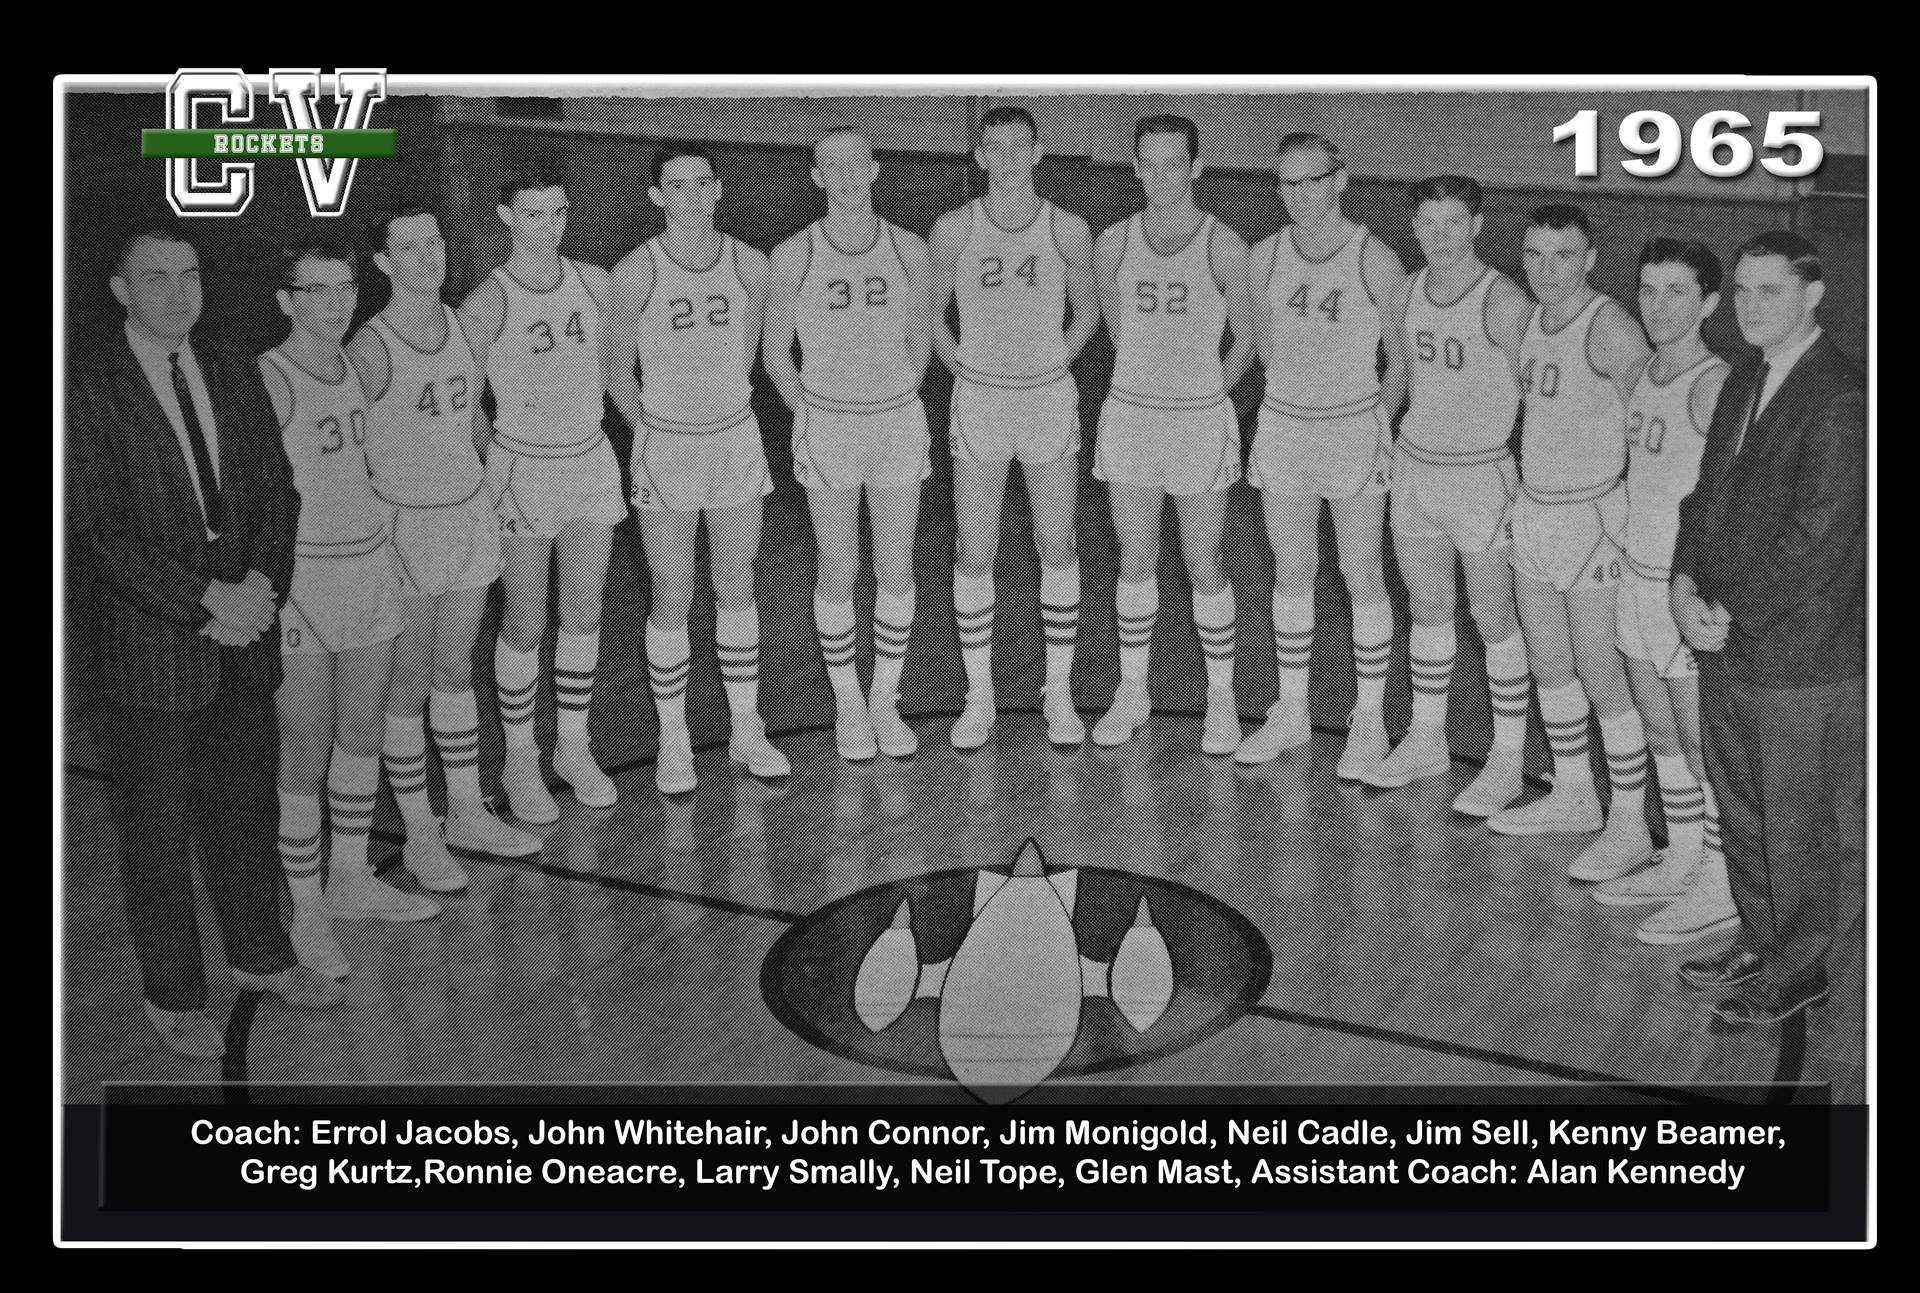 1965 Basketball Team